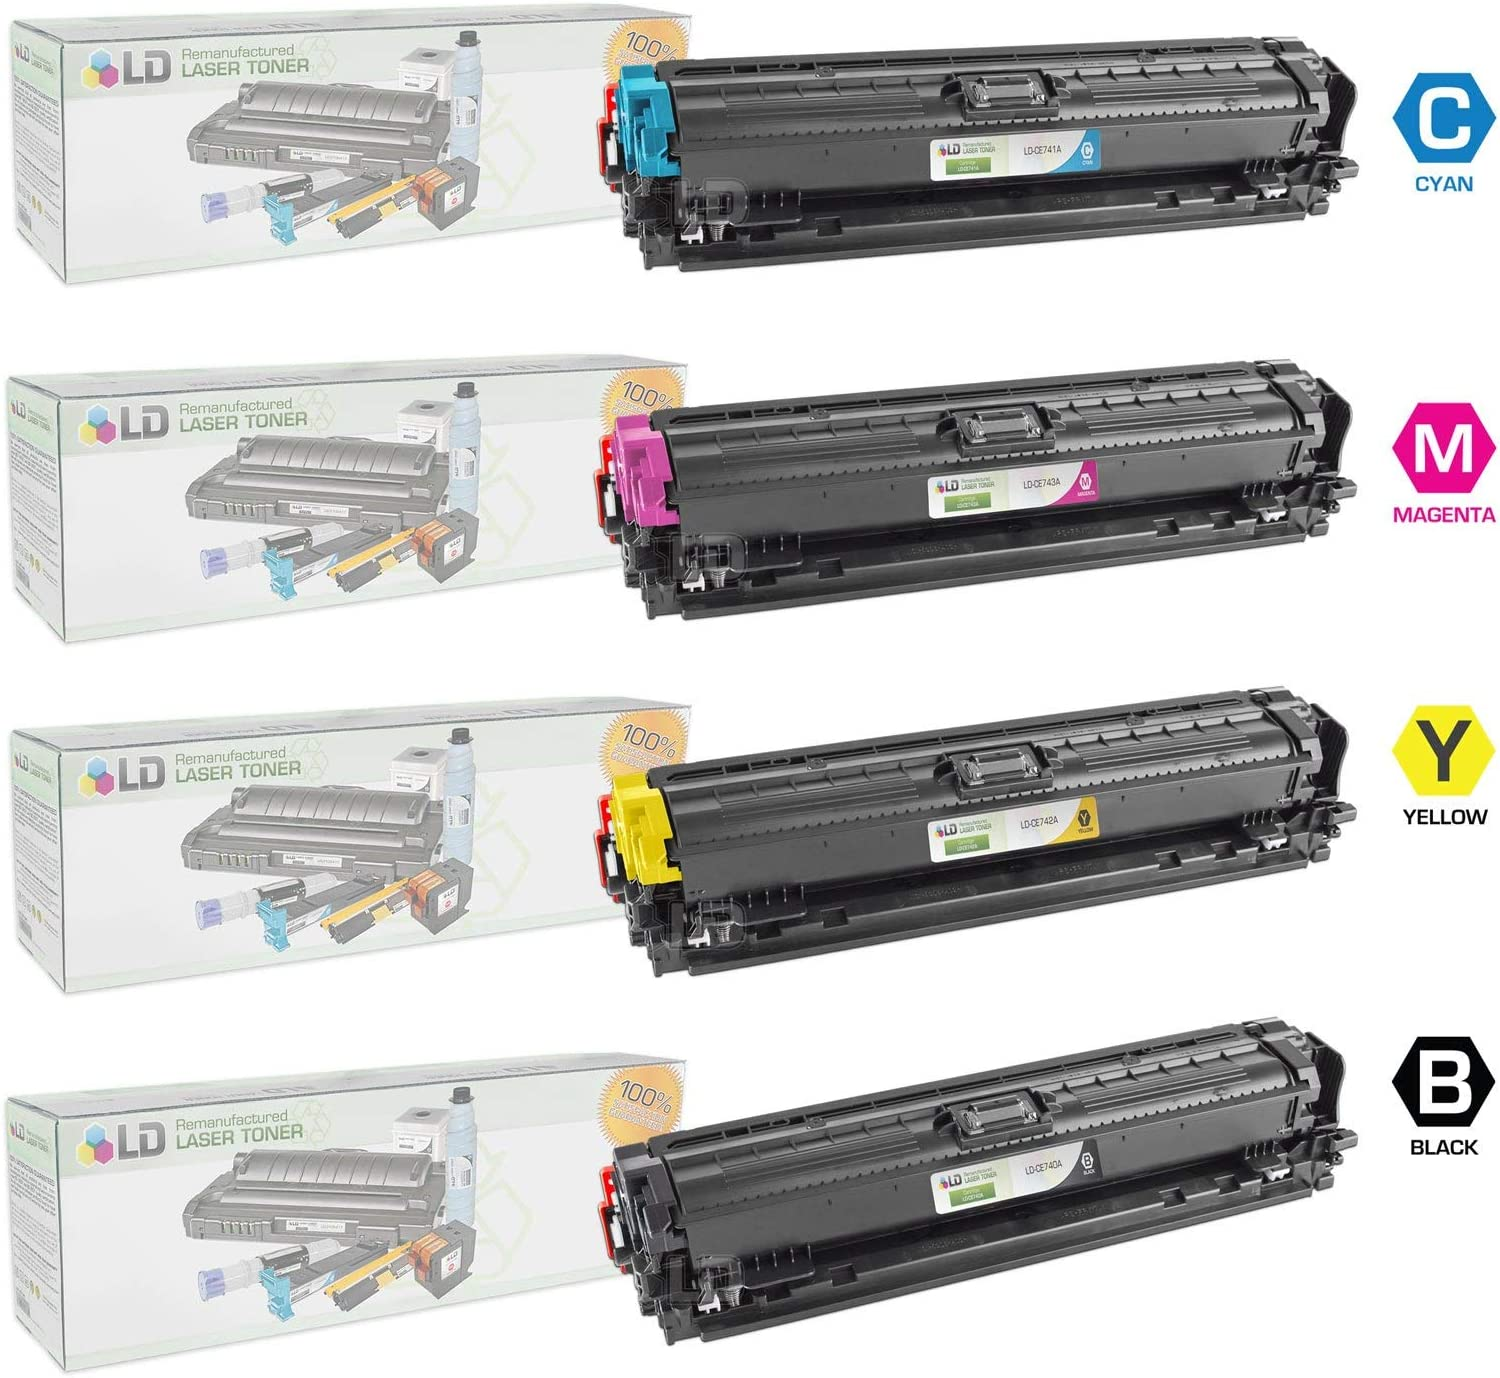 LD Remanufactured Toner Cartridge Replacement for HP 307A (Black, Cyan, Magenta, Yellow, 4-Pack)